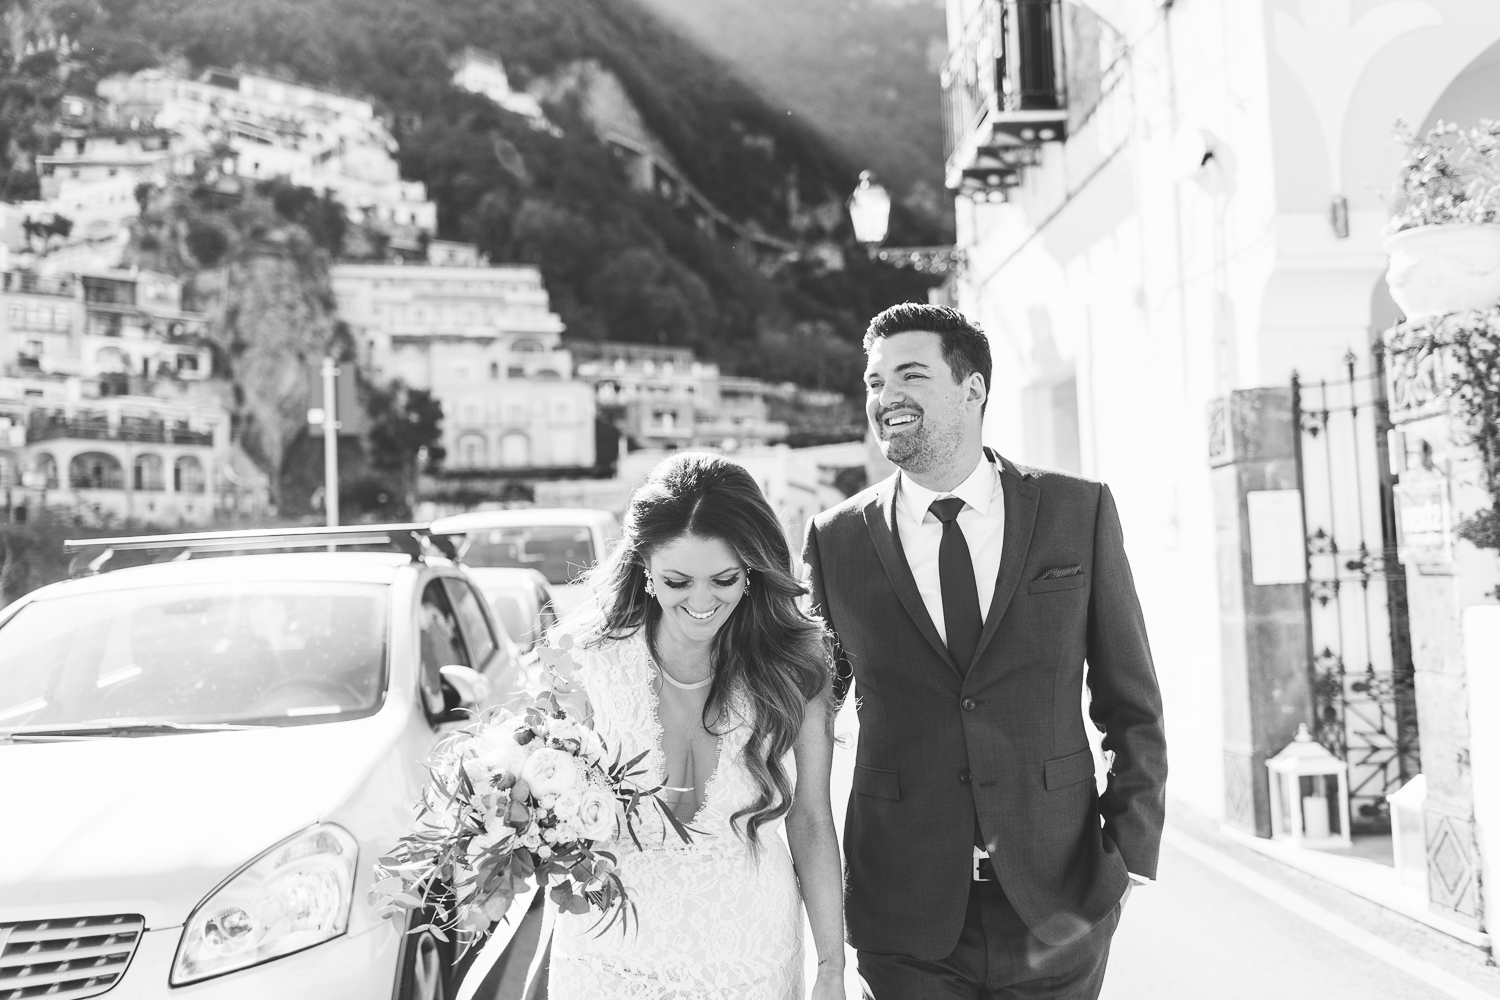 positano-wedding-photographer 22.jpg